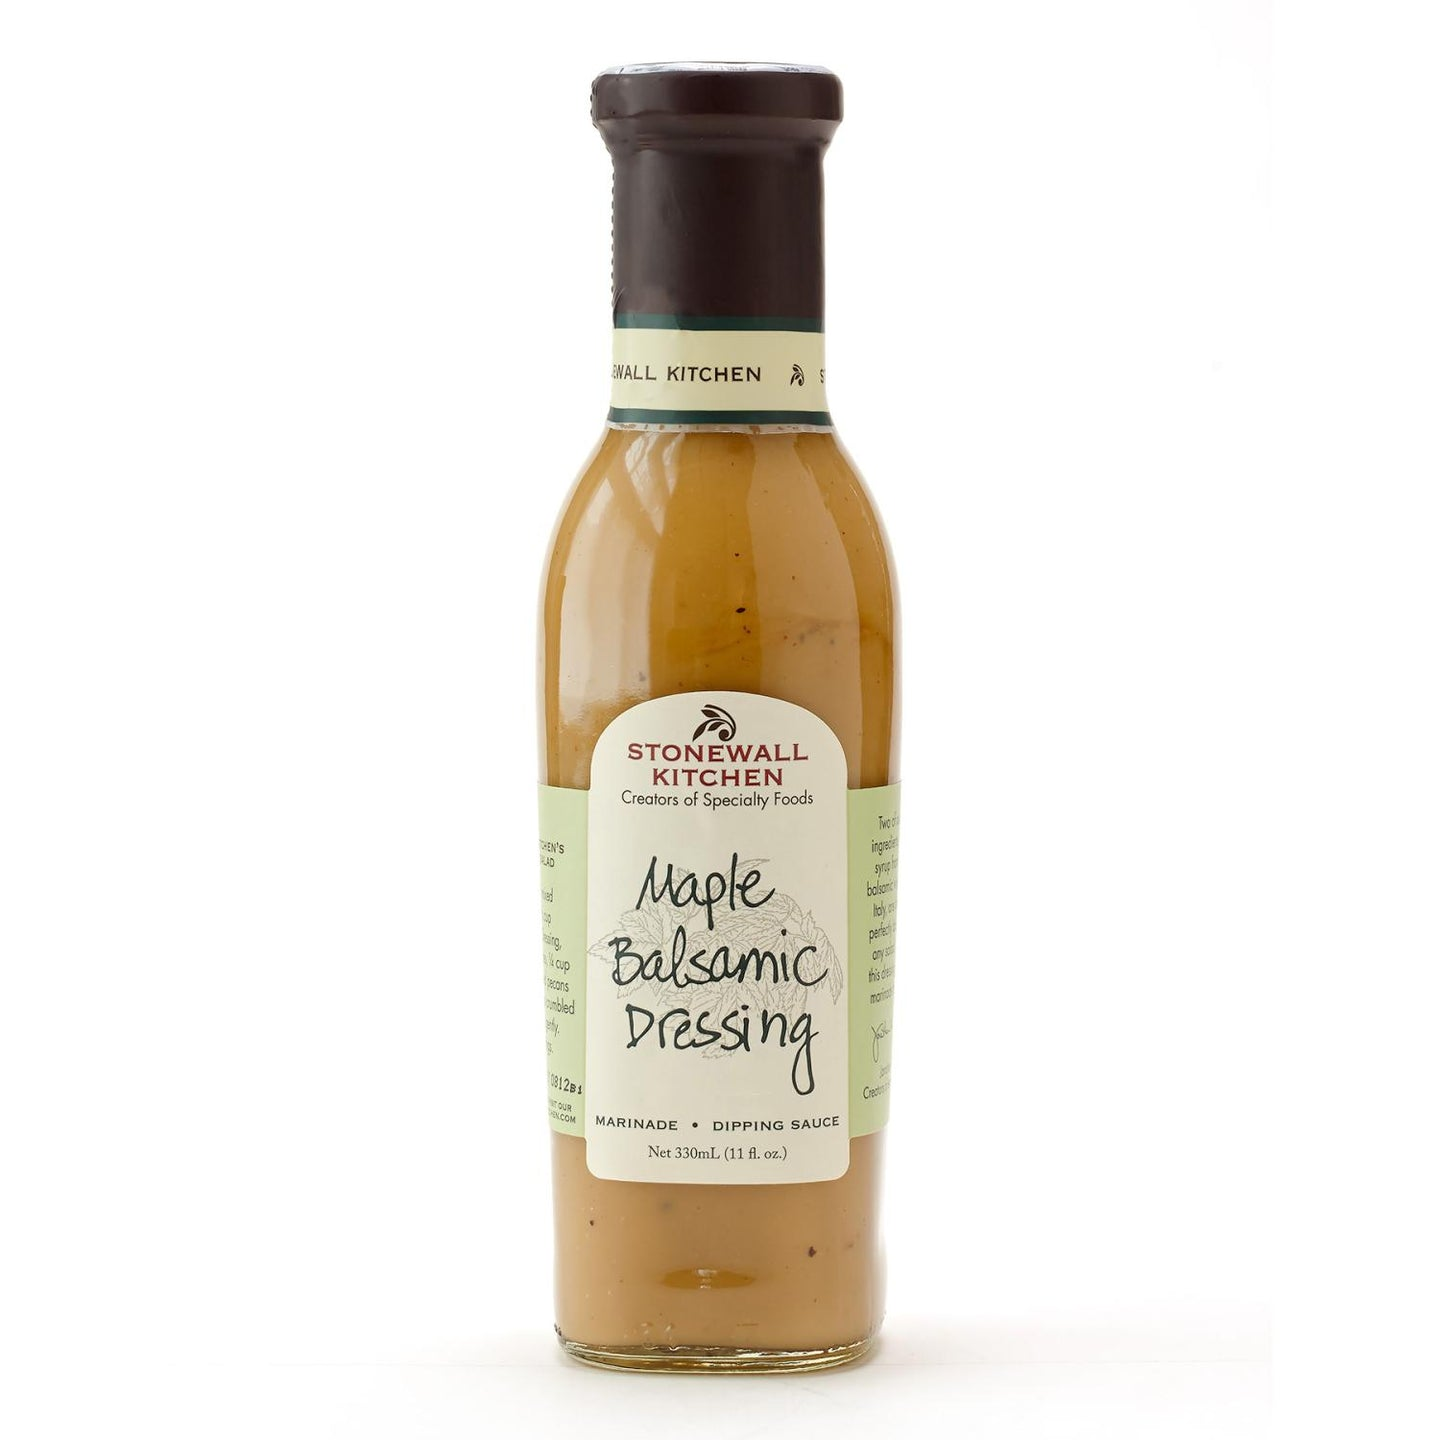 Maple Balsamic Dressing